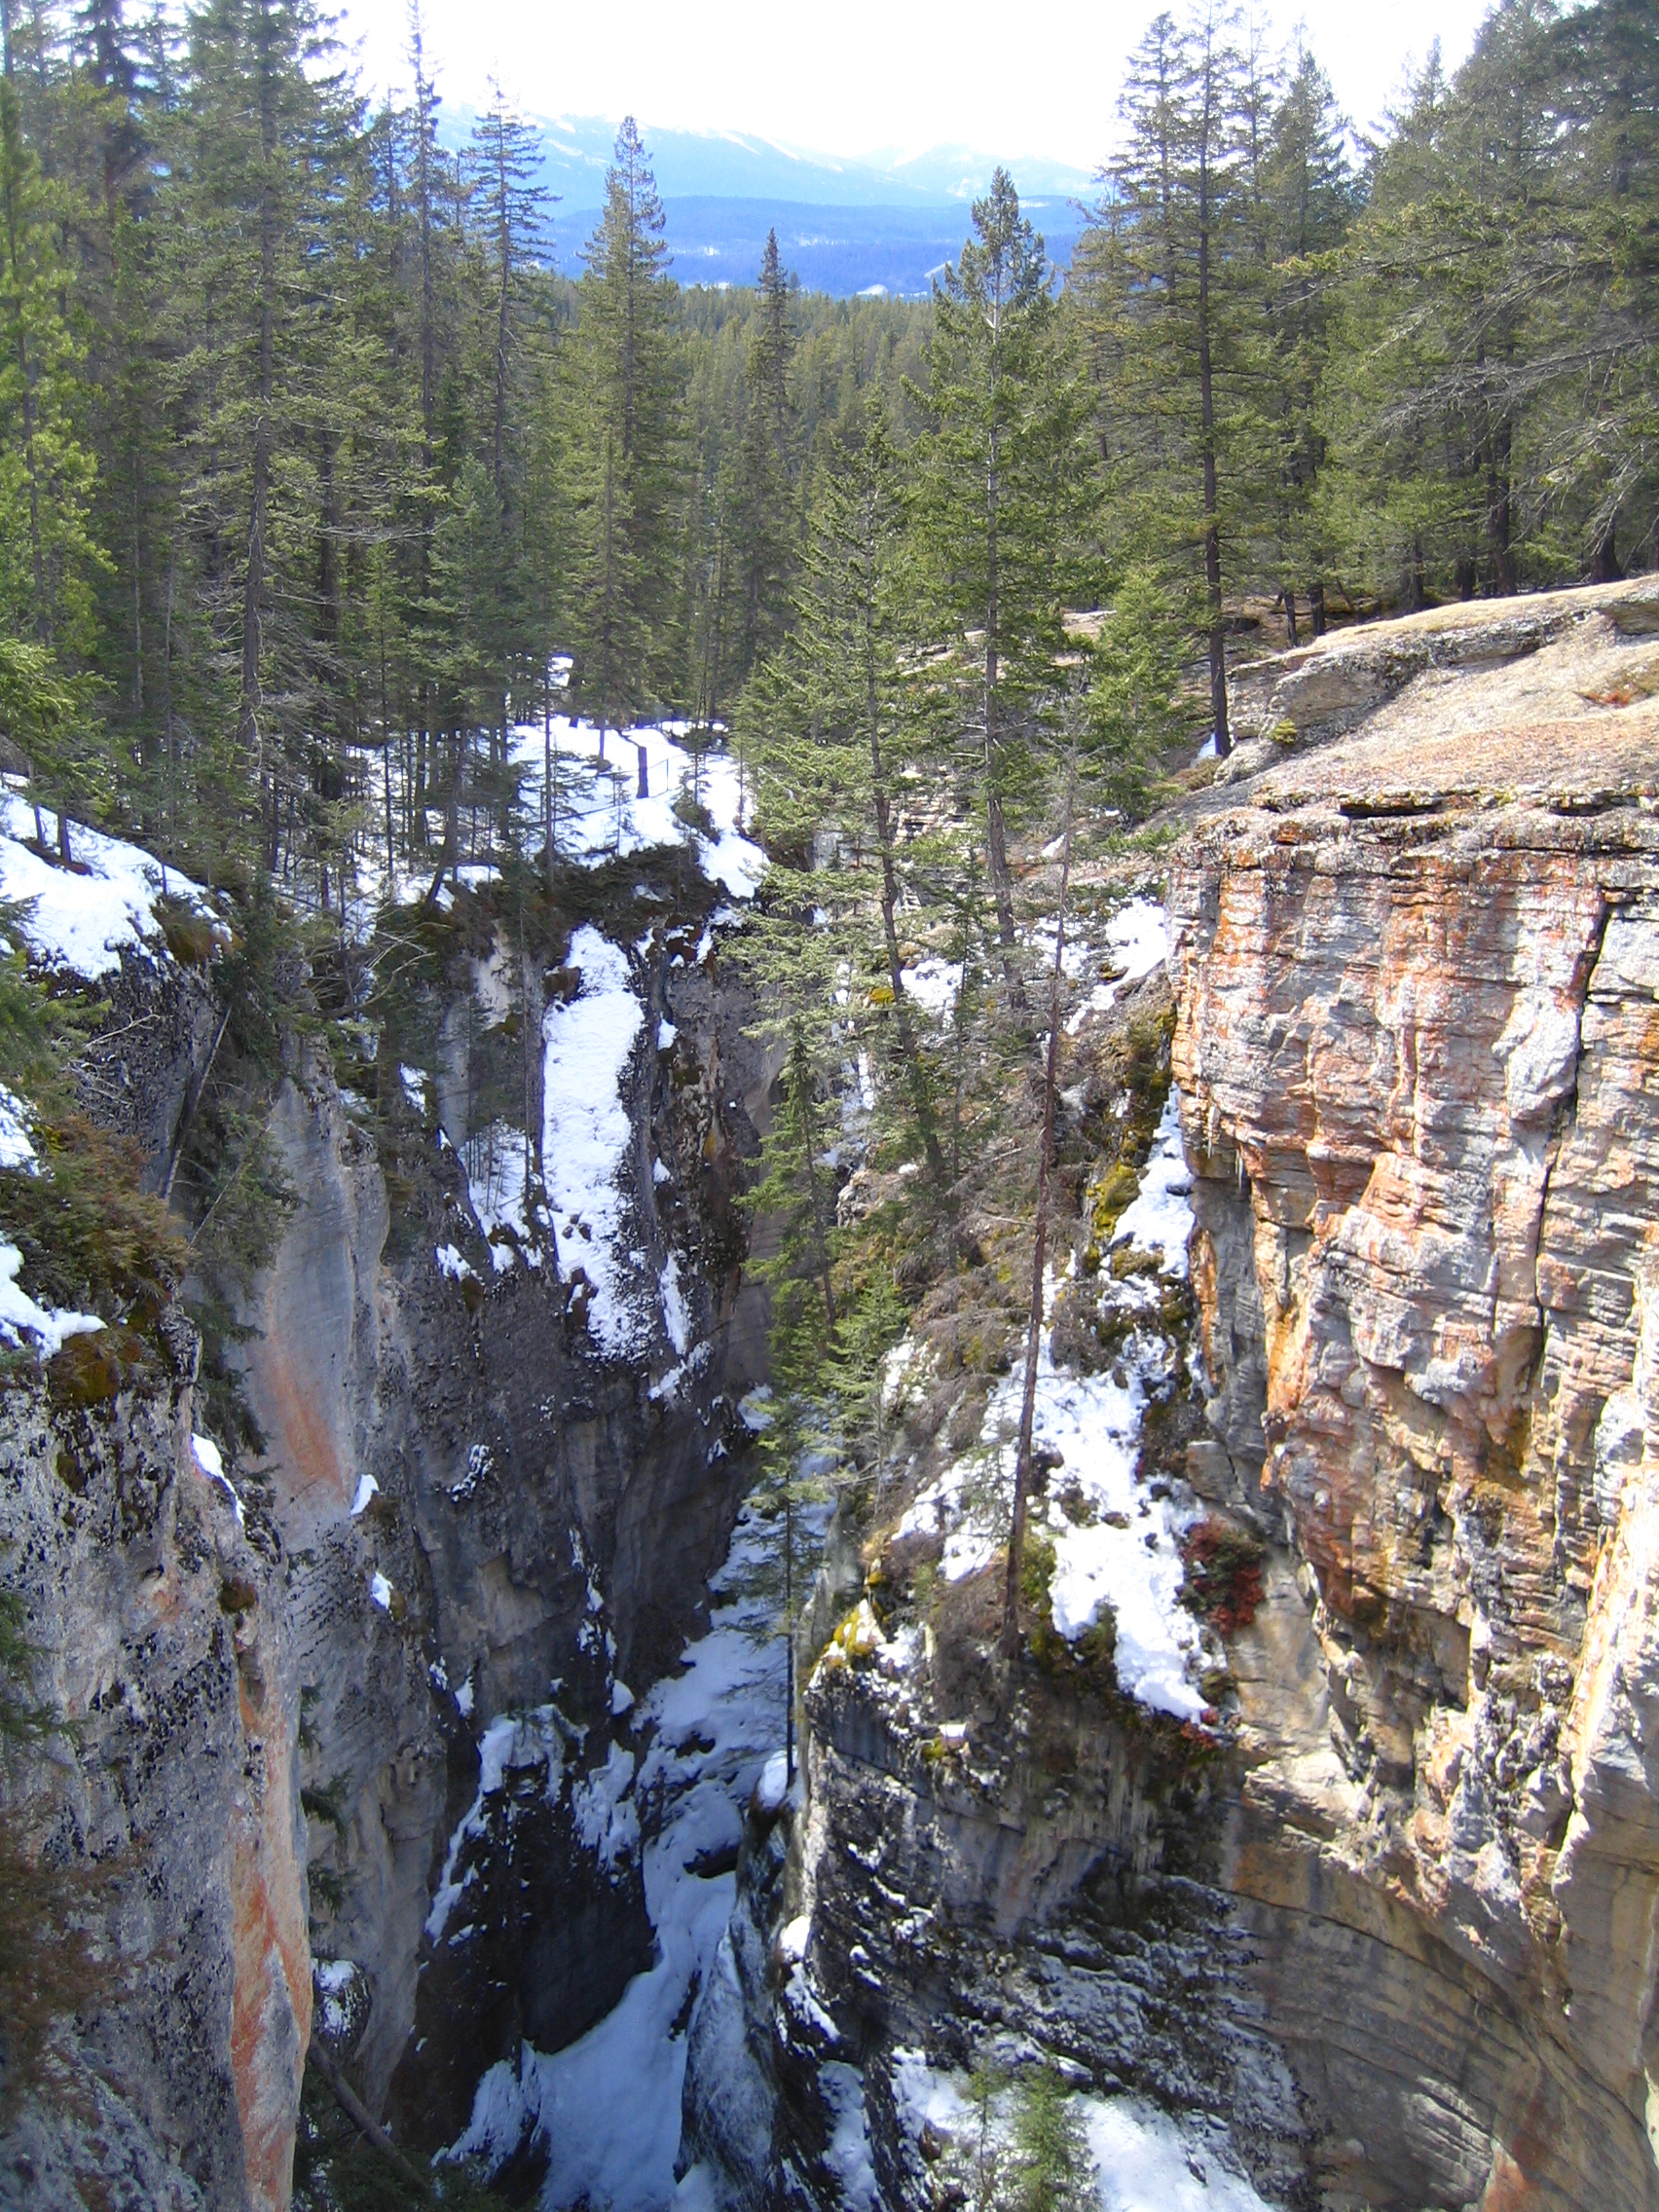 image from Frozen waterfalls and ice caves in Maligne Canyon